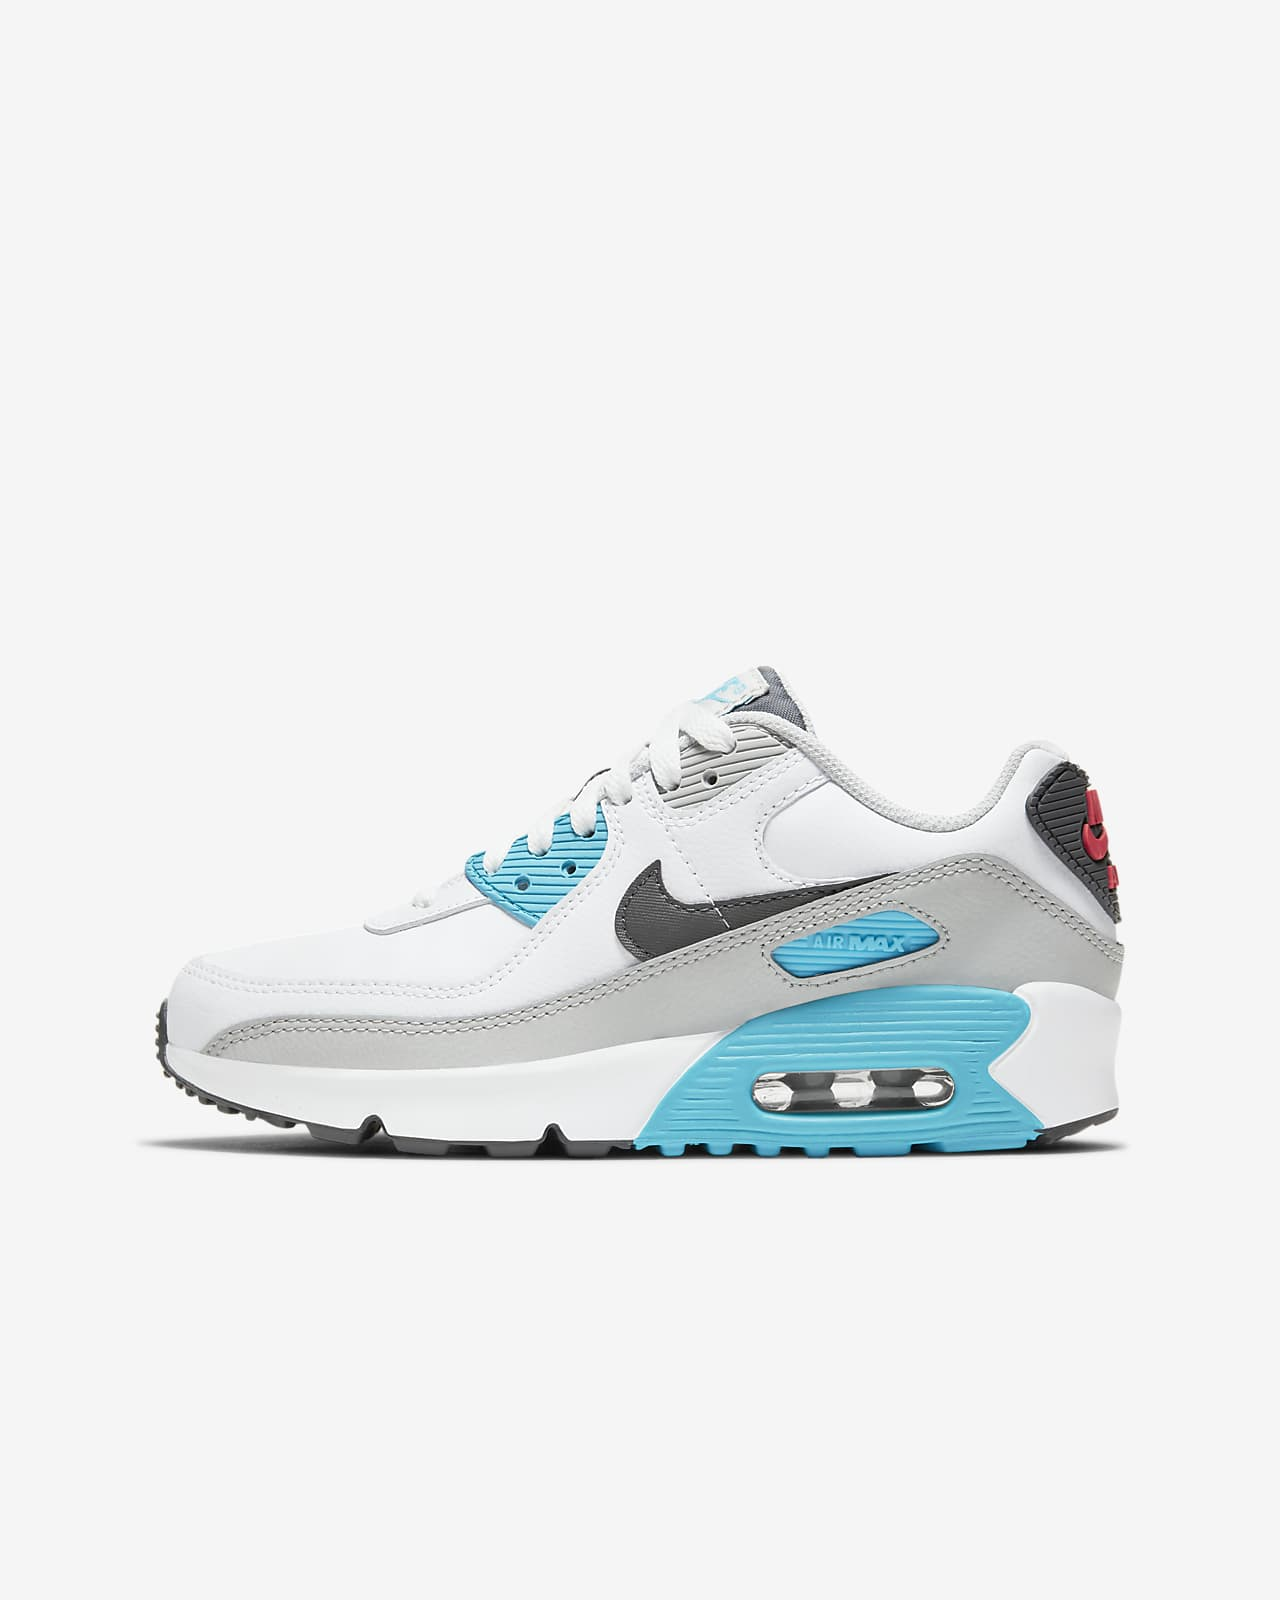 Nike Air Max 90 LTR (GS) 大童运动童鞋